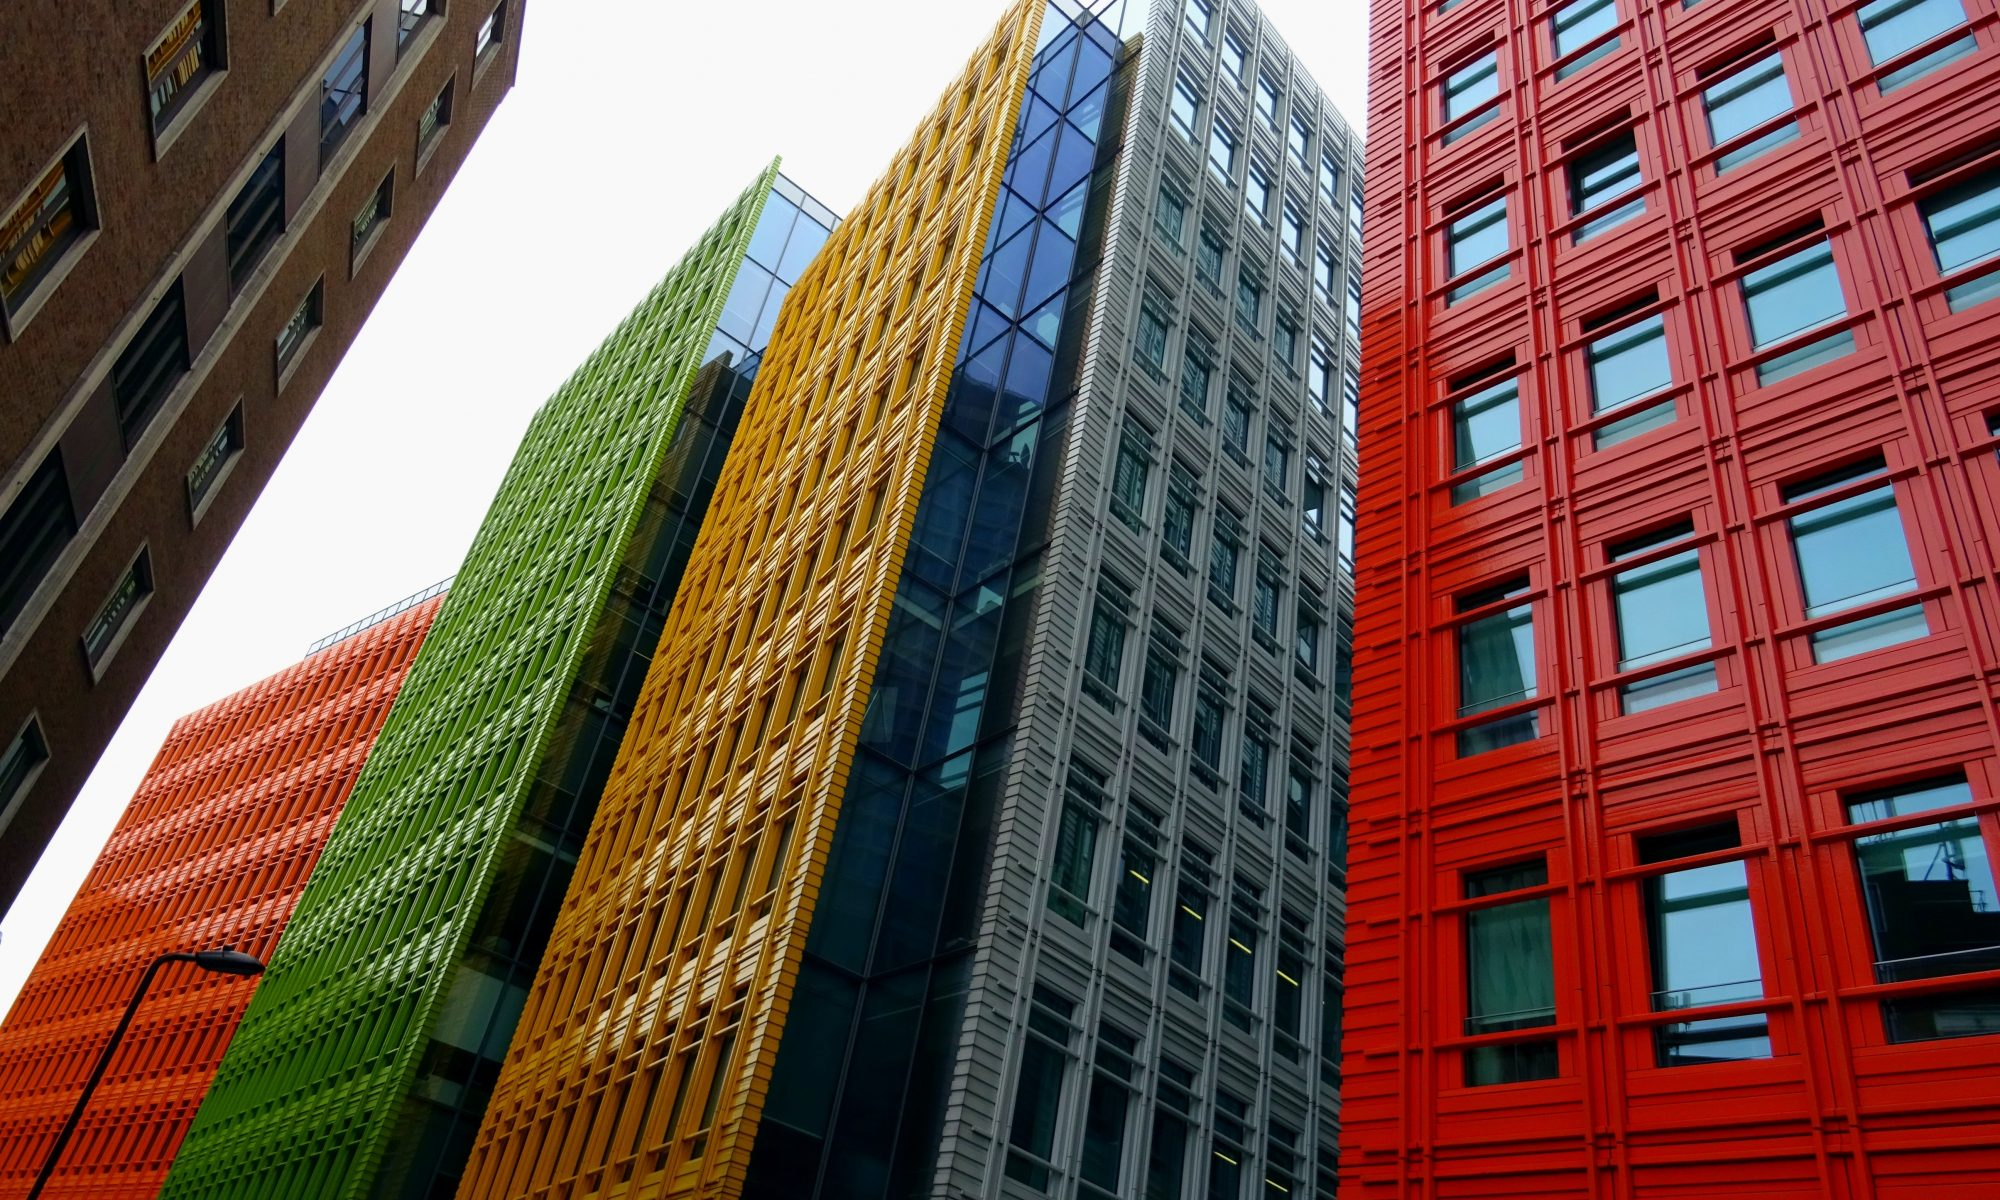 Colourful urban apartment buildings